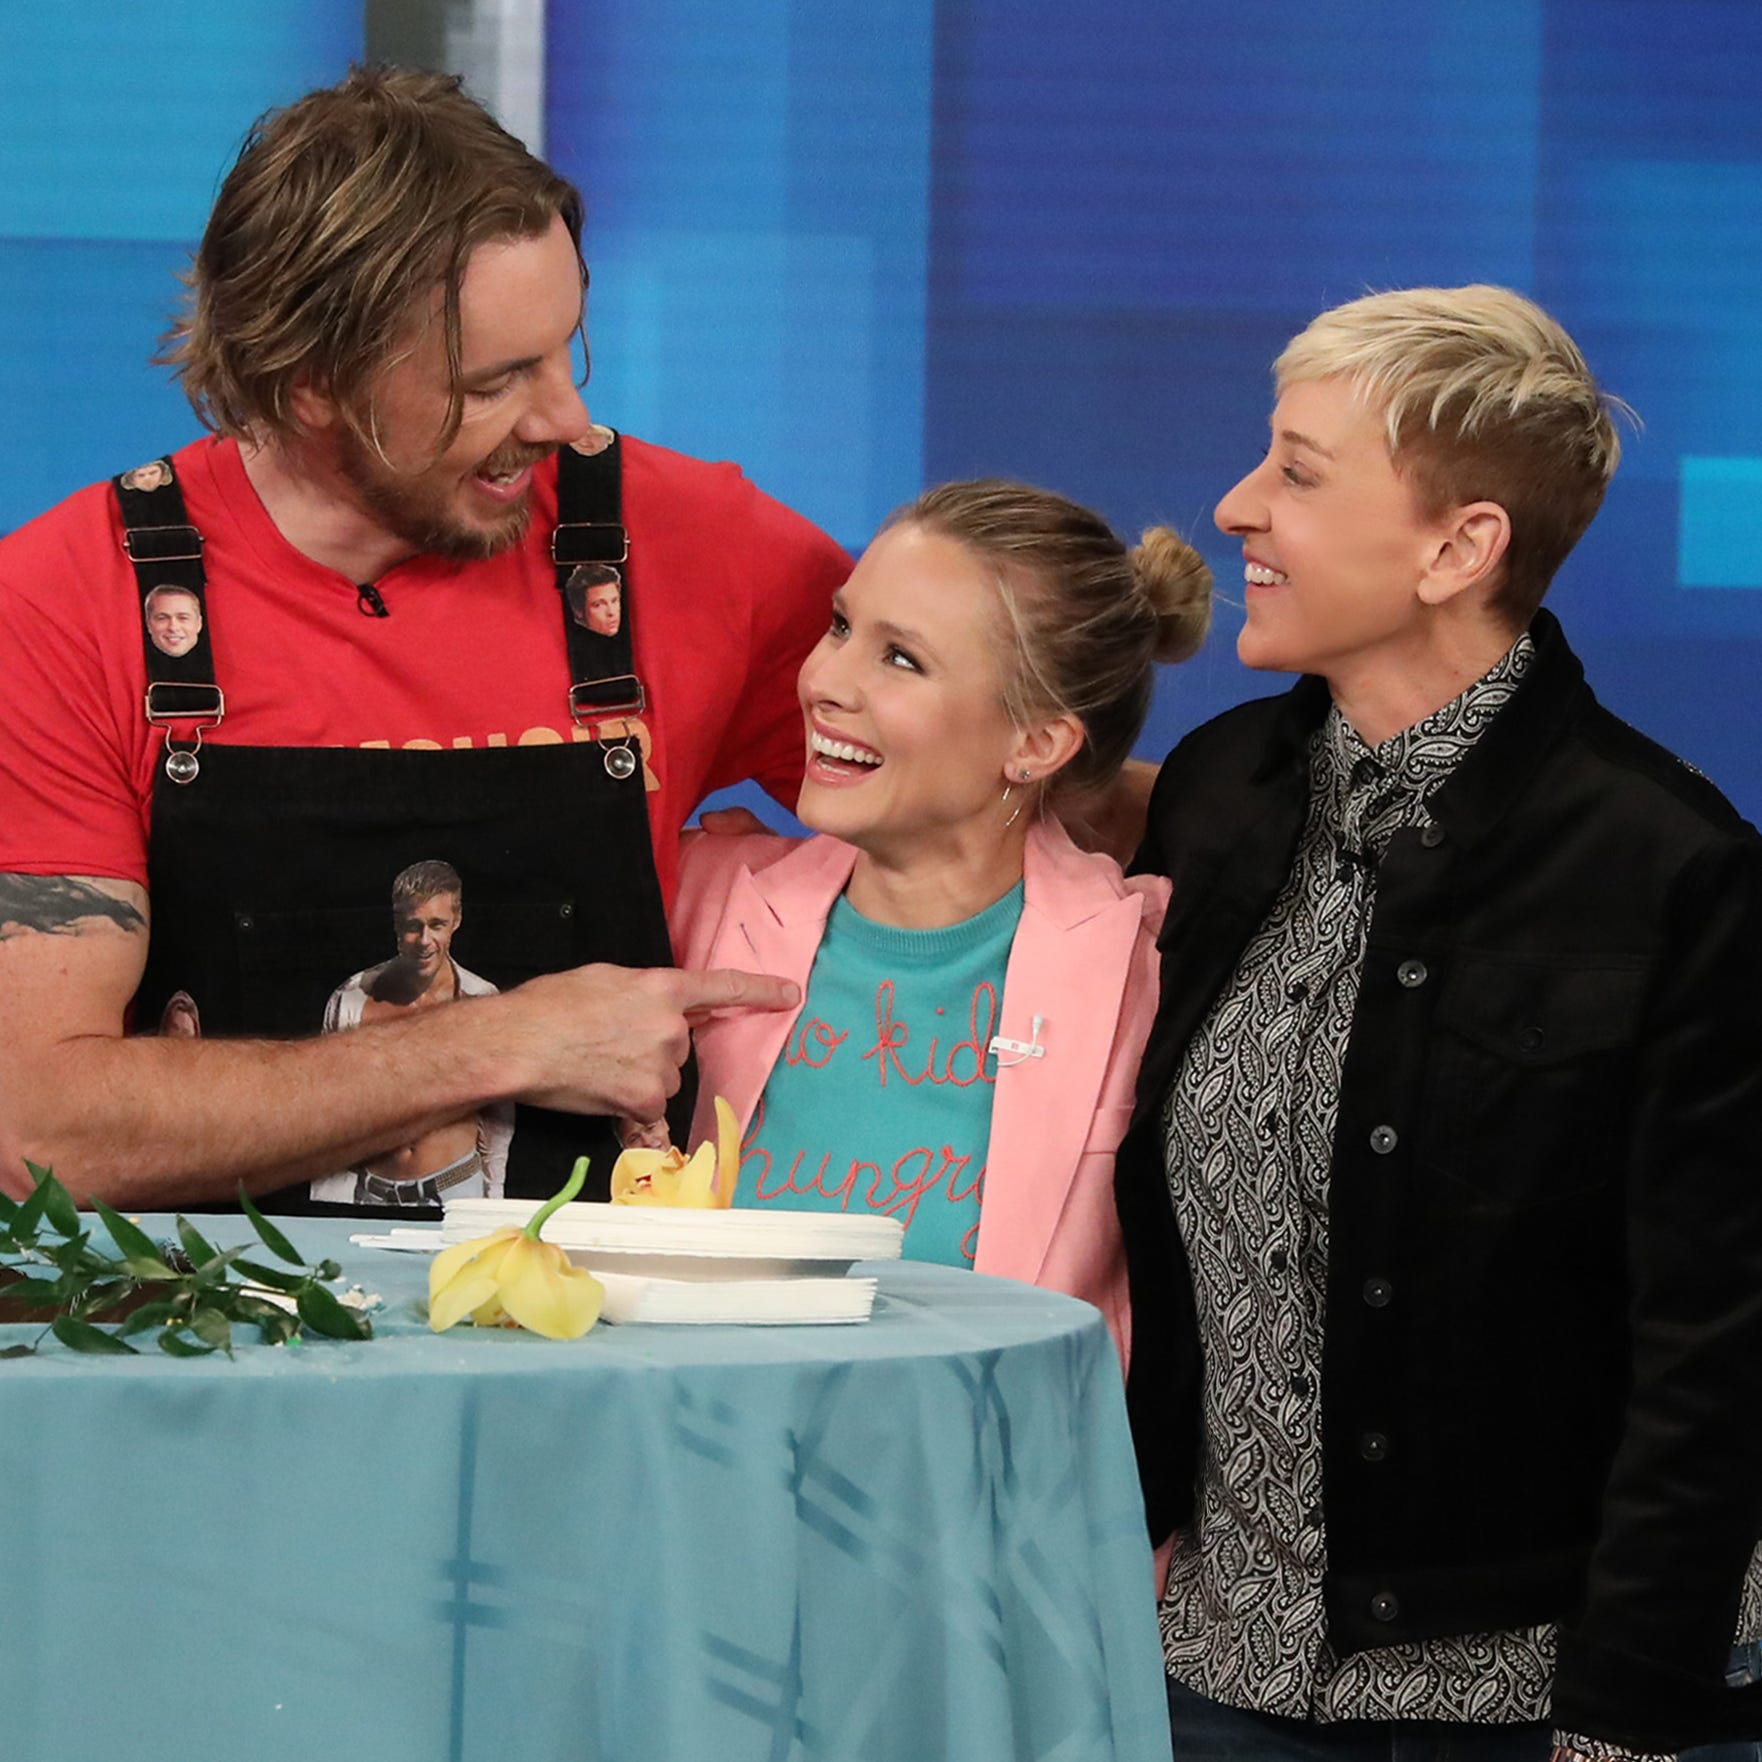 Dax Shepard with Kristen Bell and Ellen DeGeneres